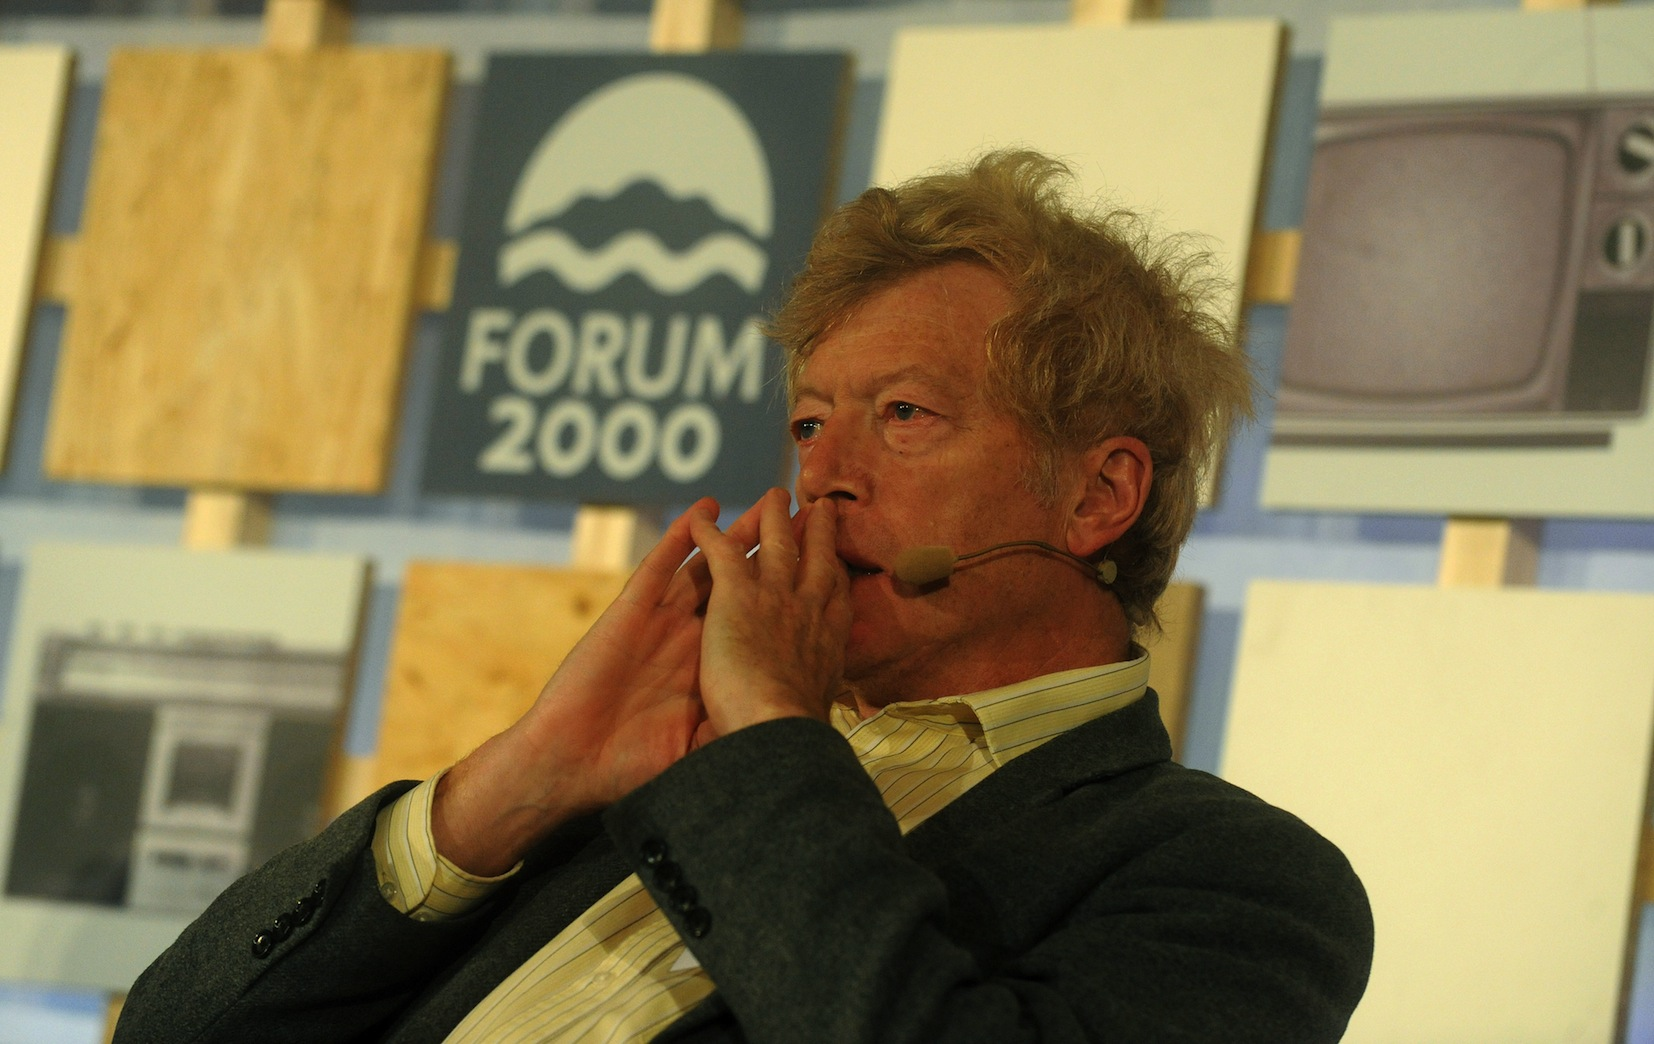 The religion of Roger Scruton